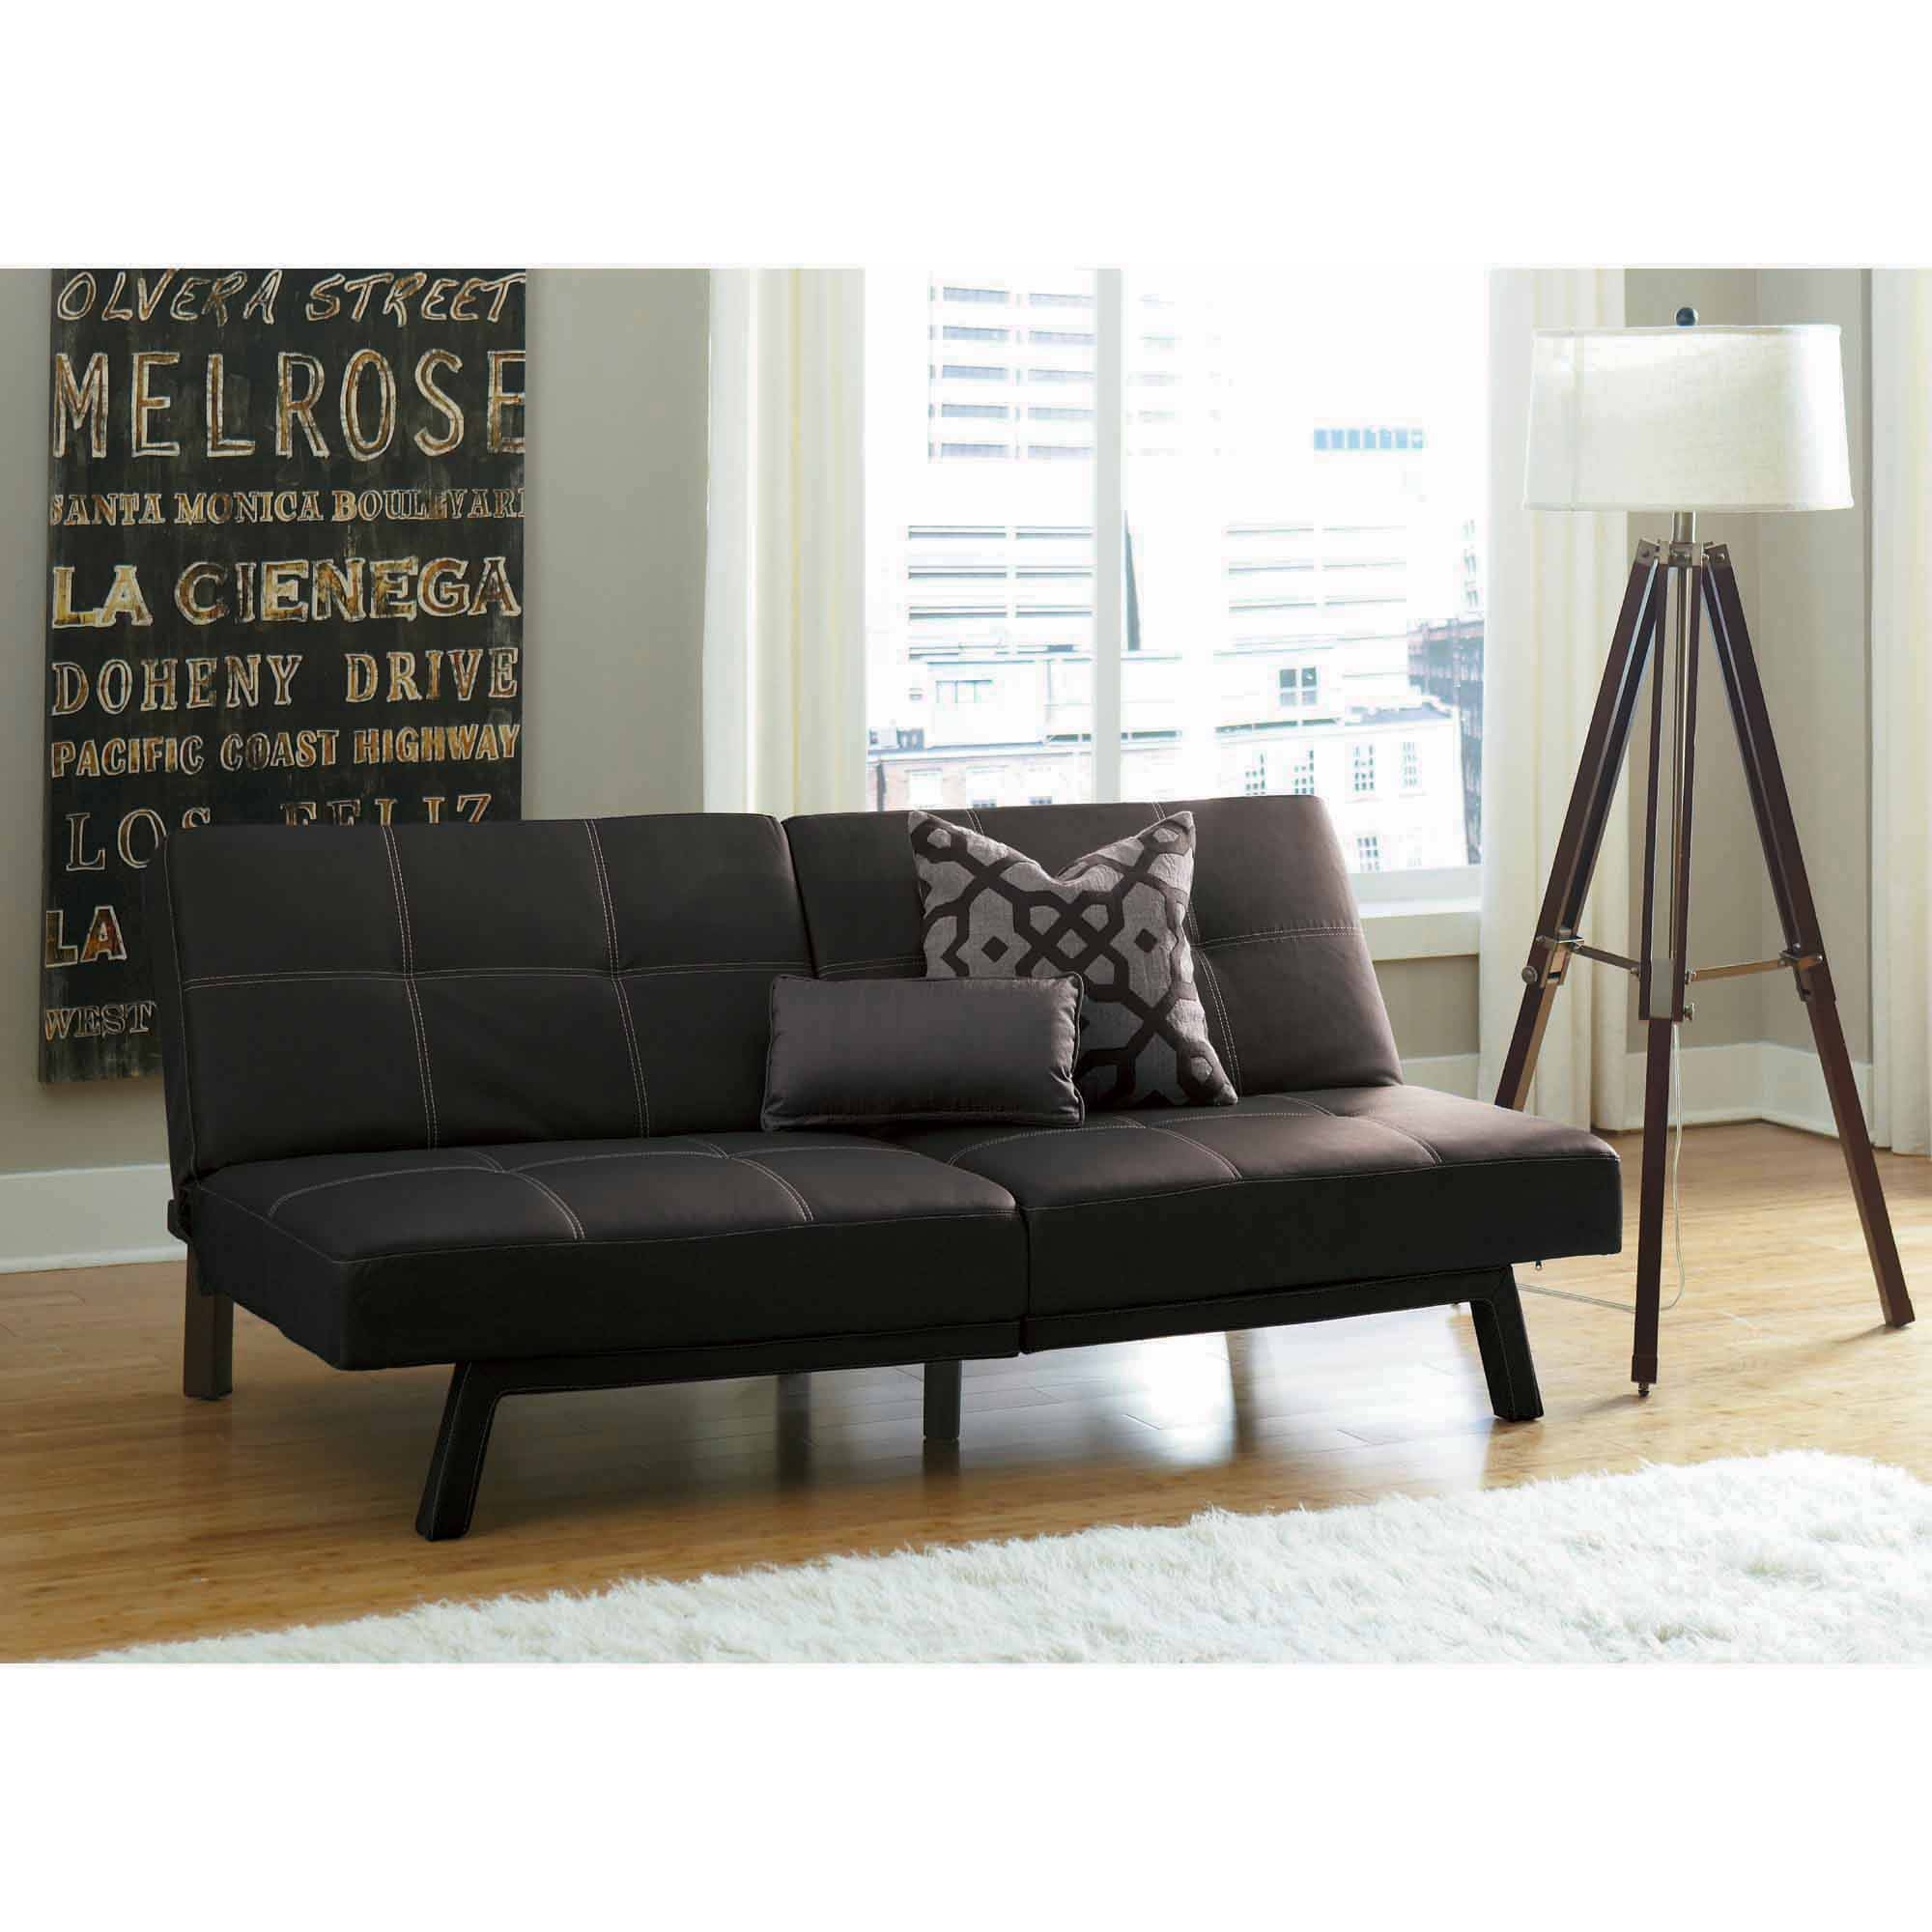 Furniture: Futon Sofa Bed With Storage | Faux Leather Futon inside Small Black Futon Sofa Beds (Image 6 of 15)